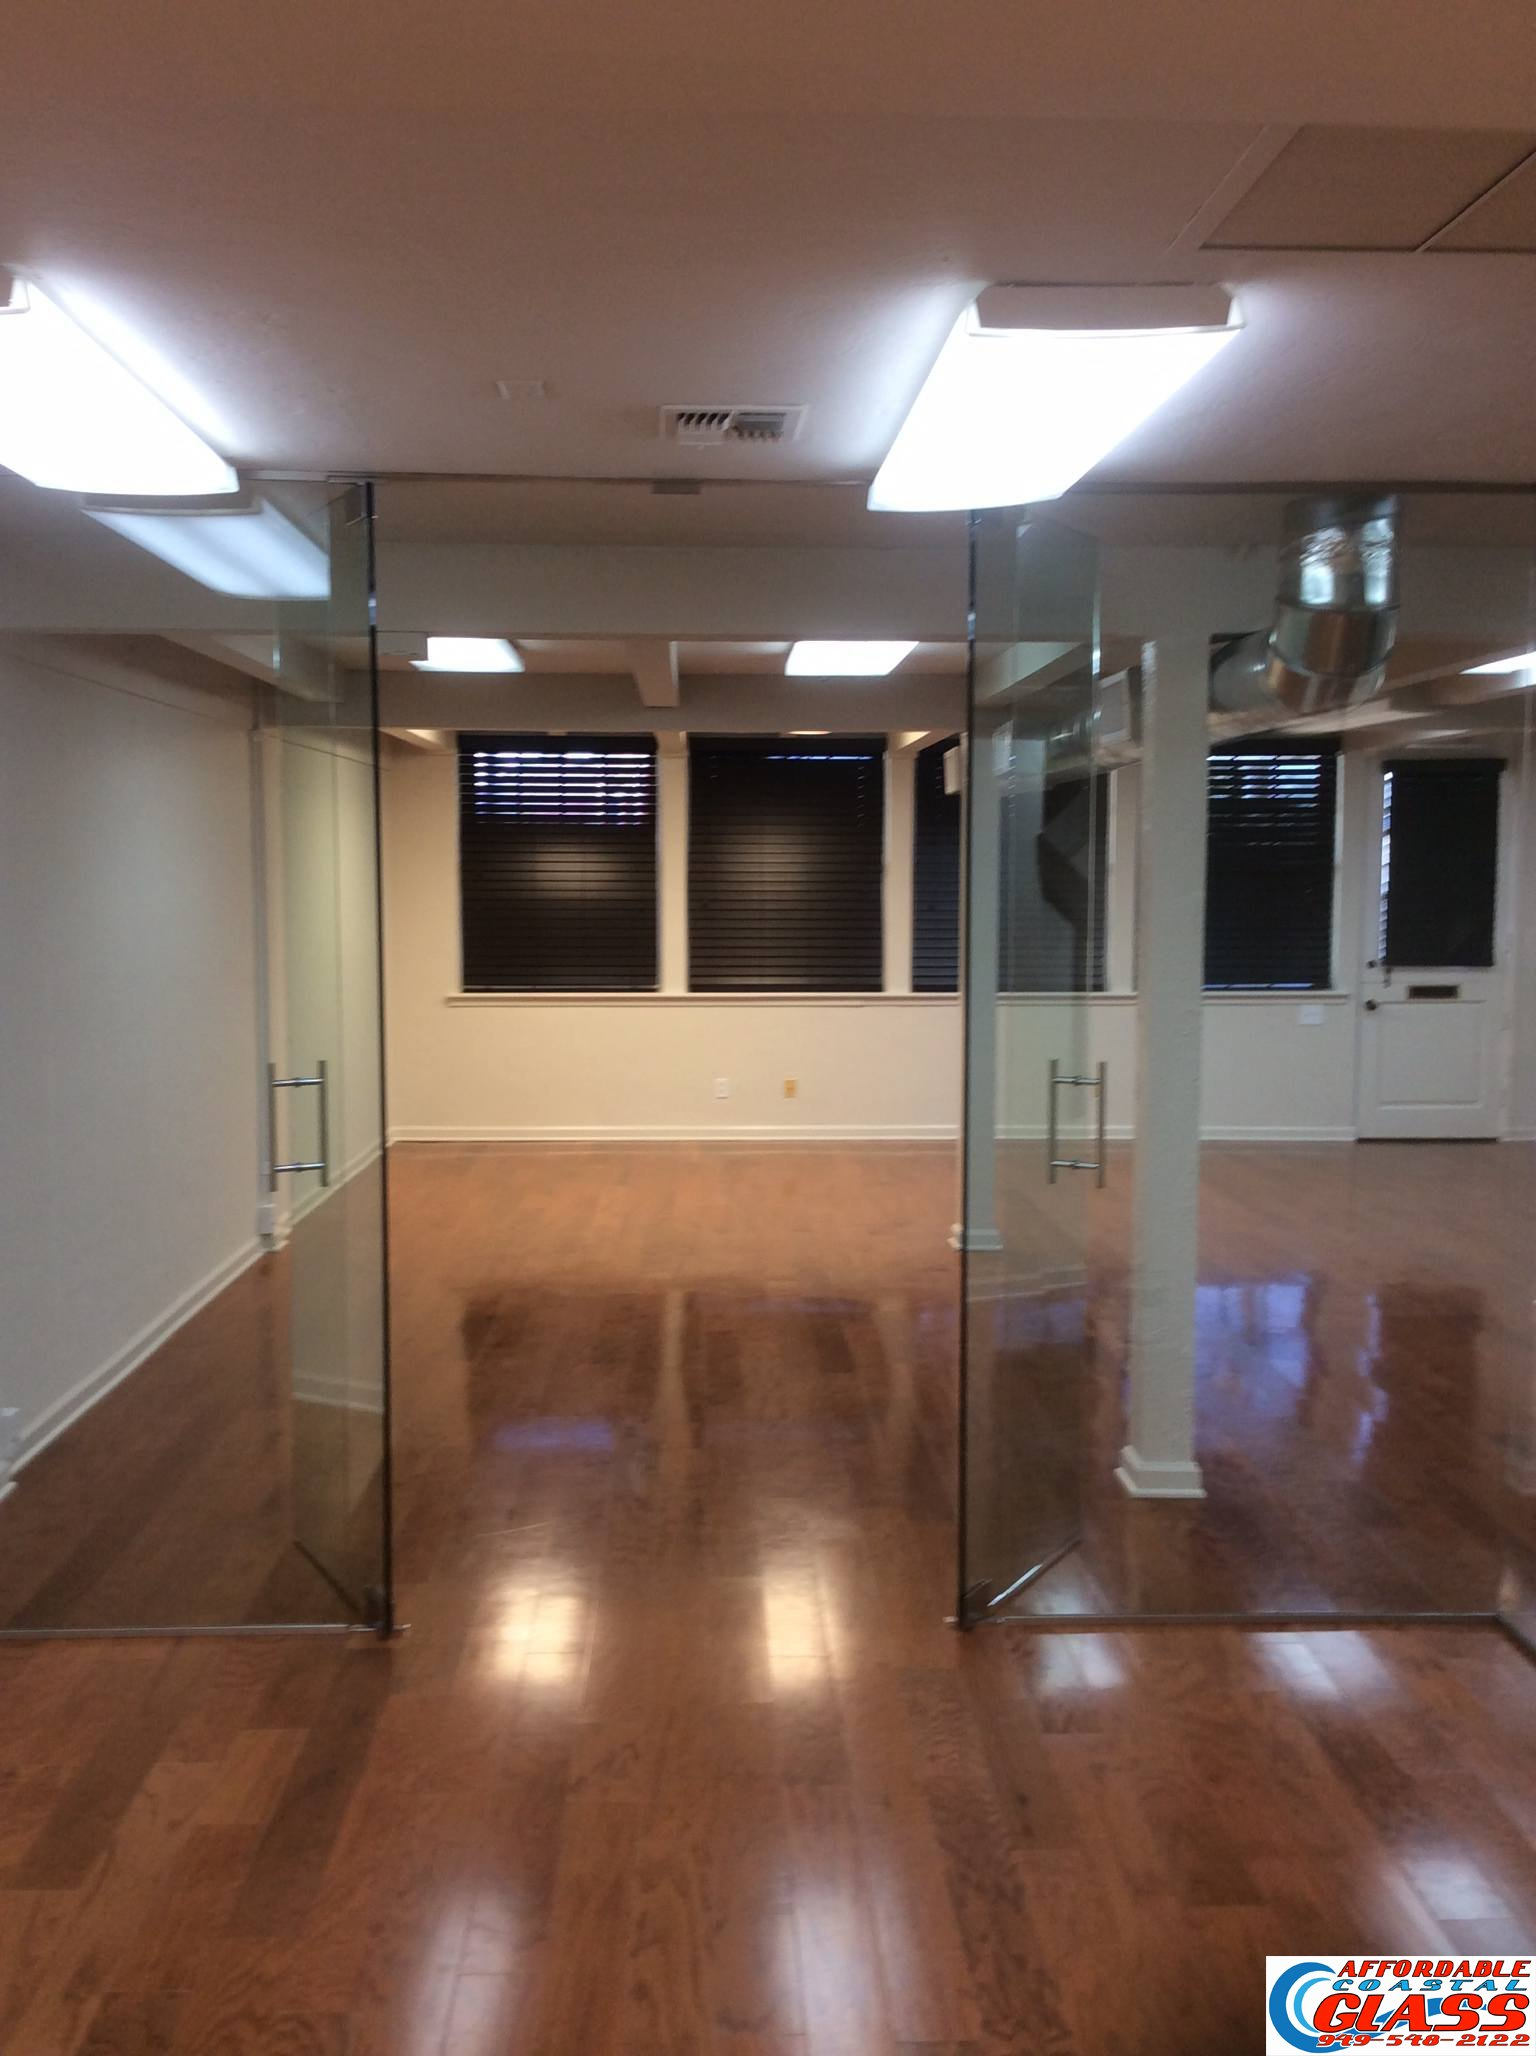 An Office Building In Orange County, Called Us With An Urgent Request For  Several Glass Walls And Herculite Doors. They Wanted The Cleanest, Lowest  Cost, ...